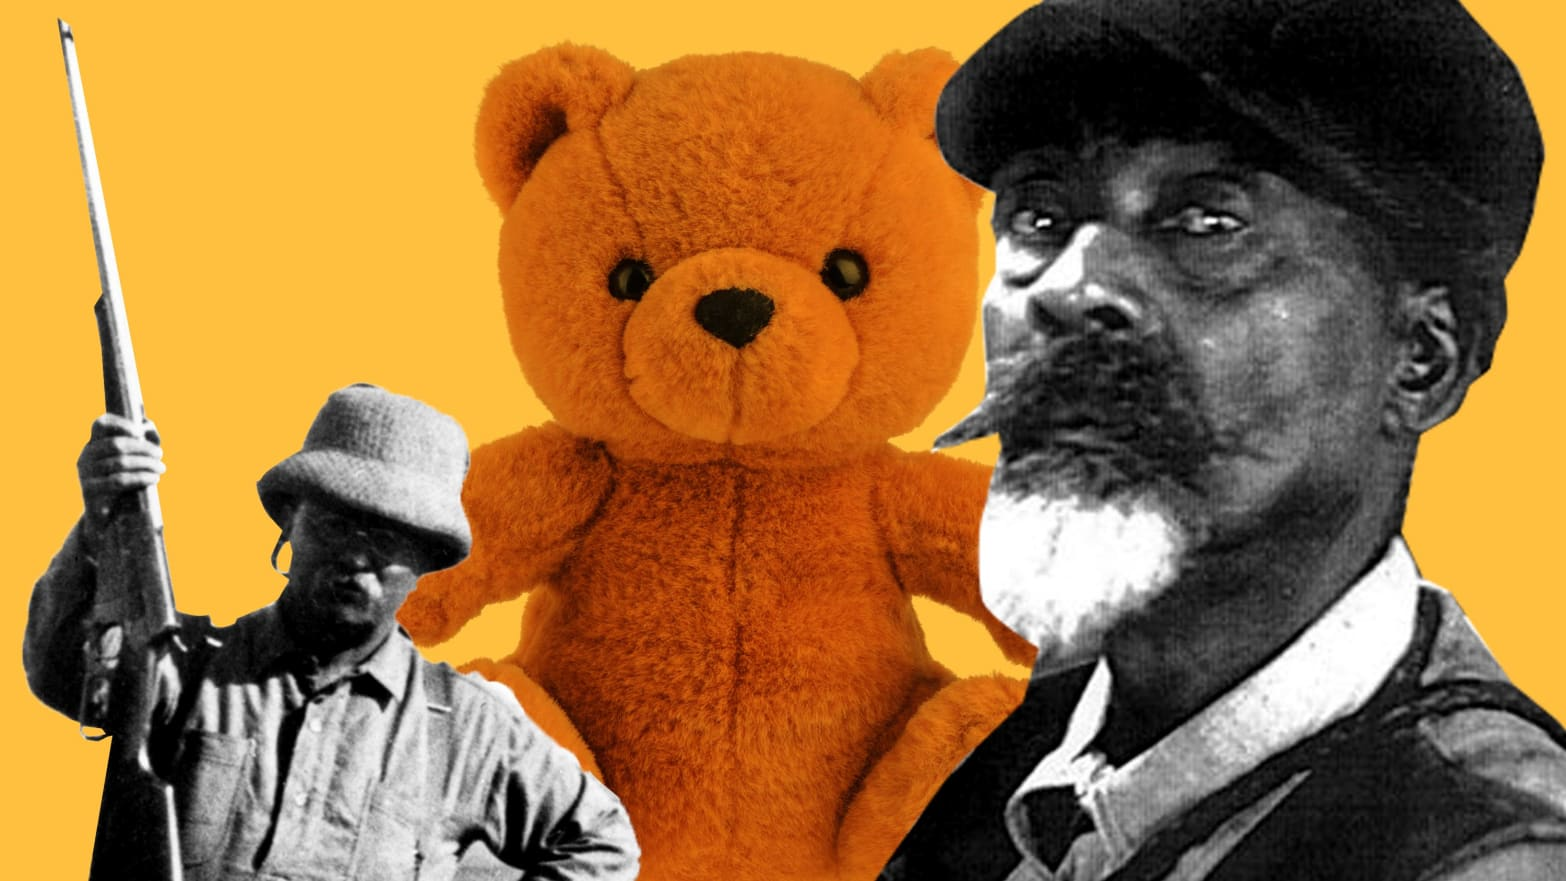 The African American Hunter Who Made Roosevelt's 'Teddy Bear' Famous